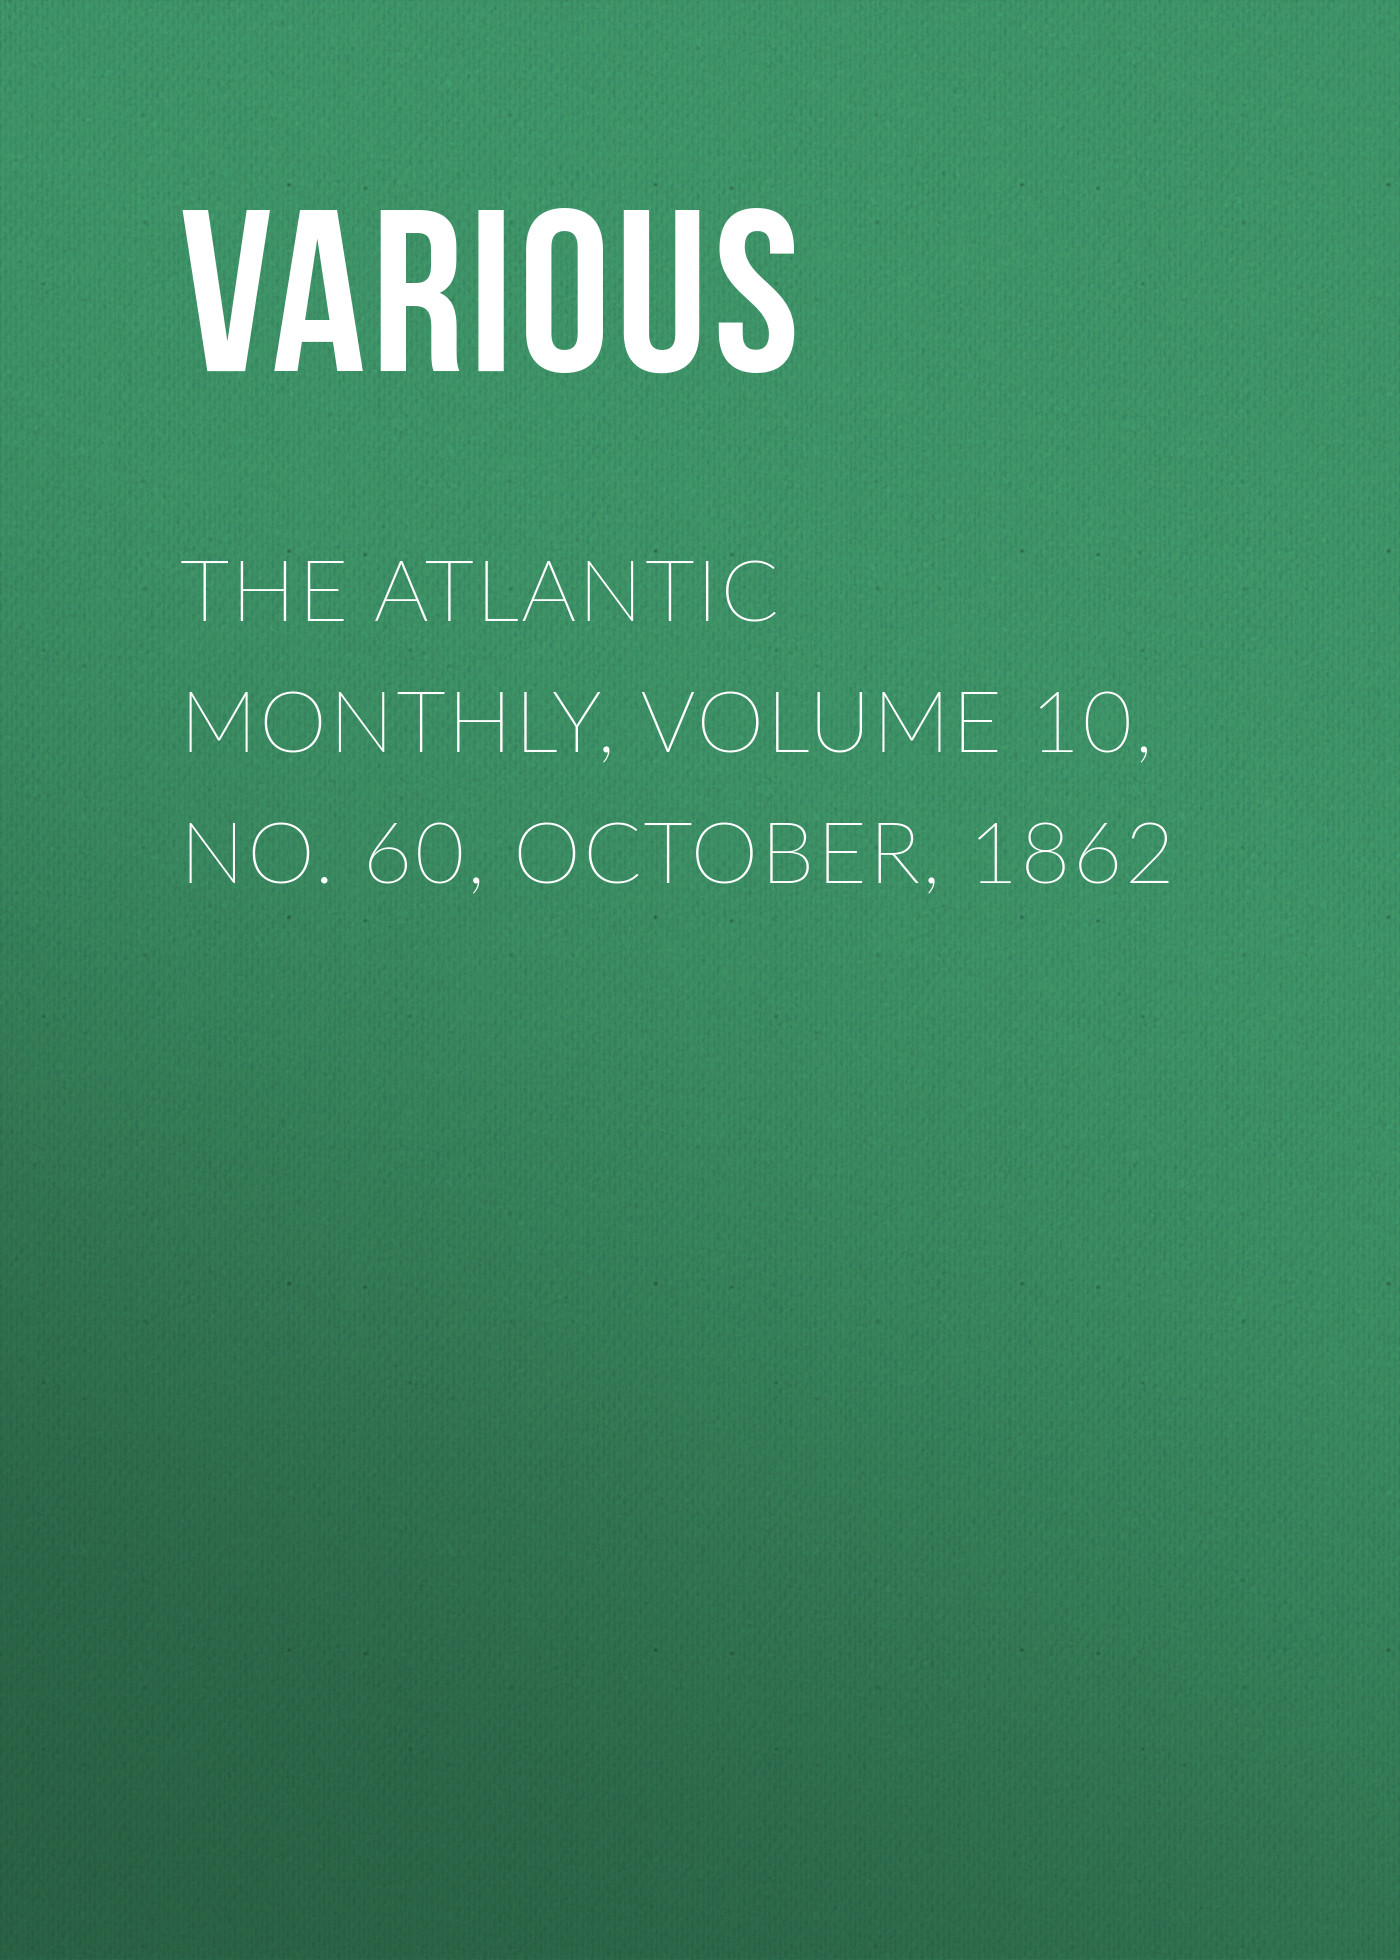 Various The Atlantic Monthly, Volume 10, No. 60, October, 1862 various the atlantic monthly volume 02 no 10 august 1858